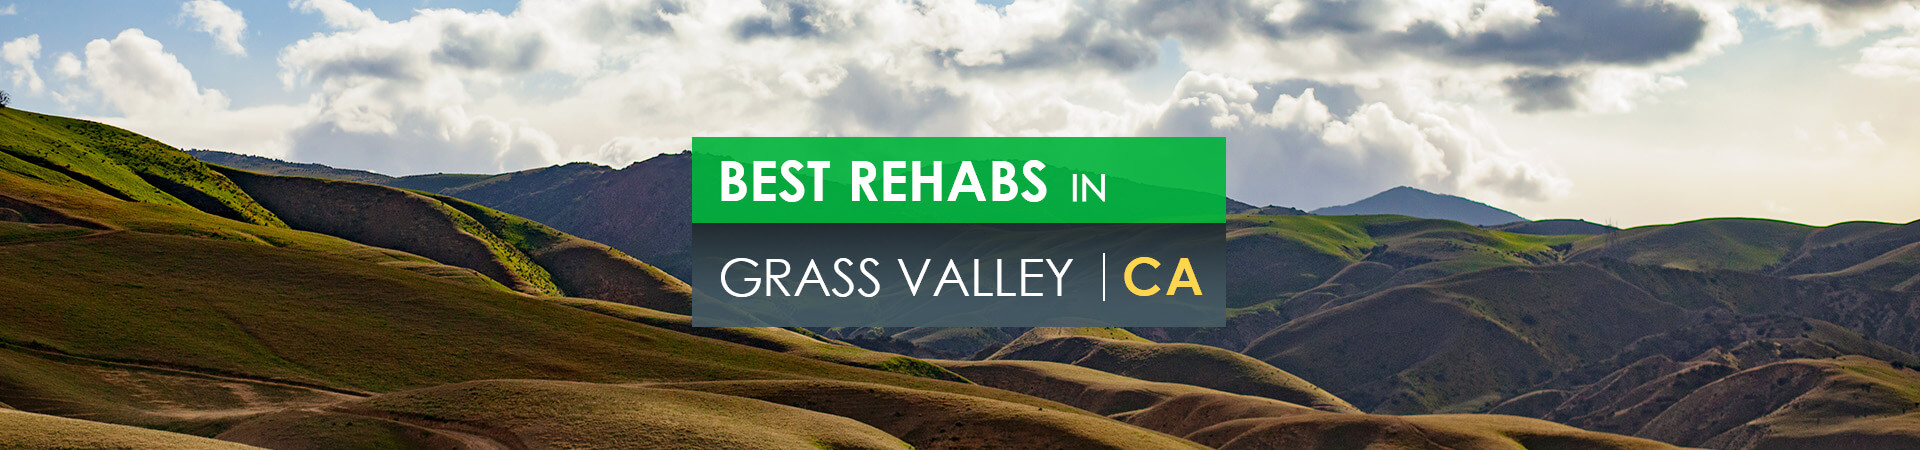 Best rehabs in Grass Valley, CA